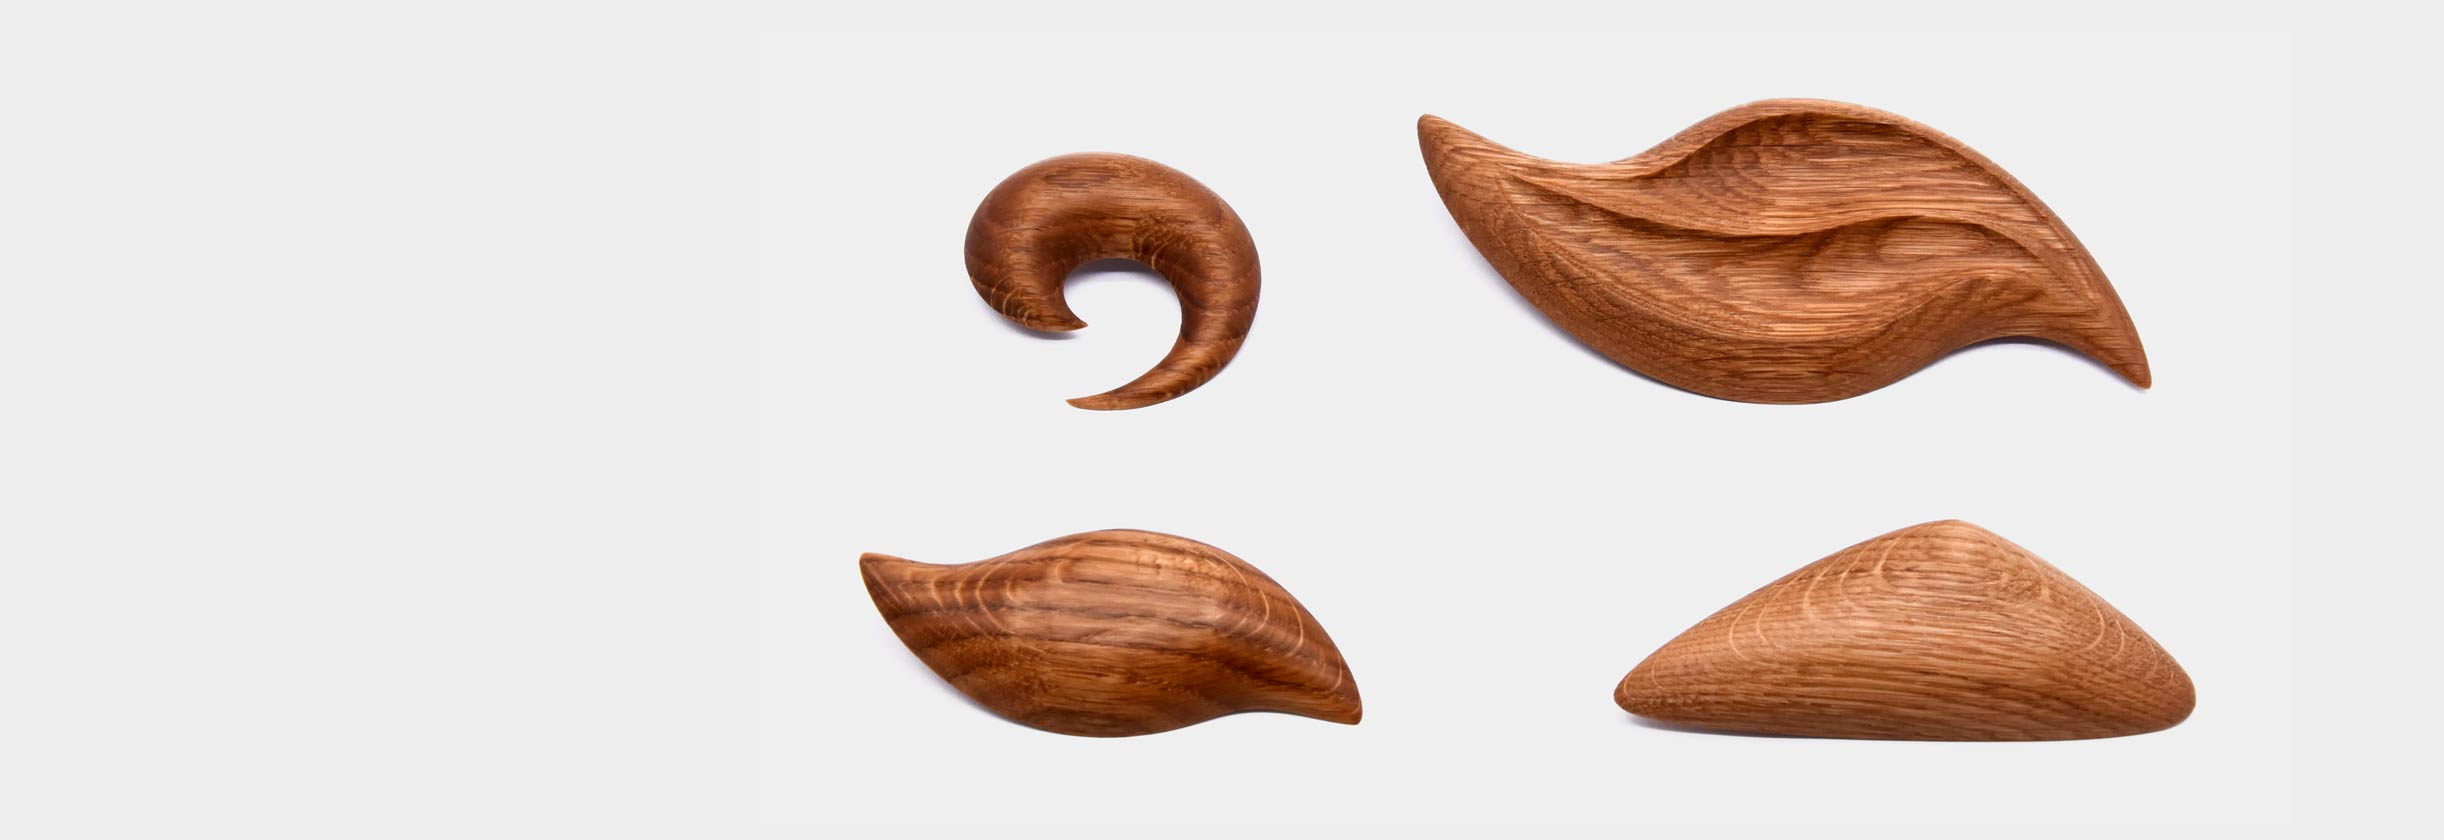 Wooden brooches from oak